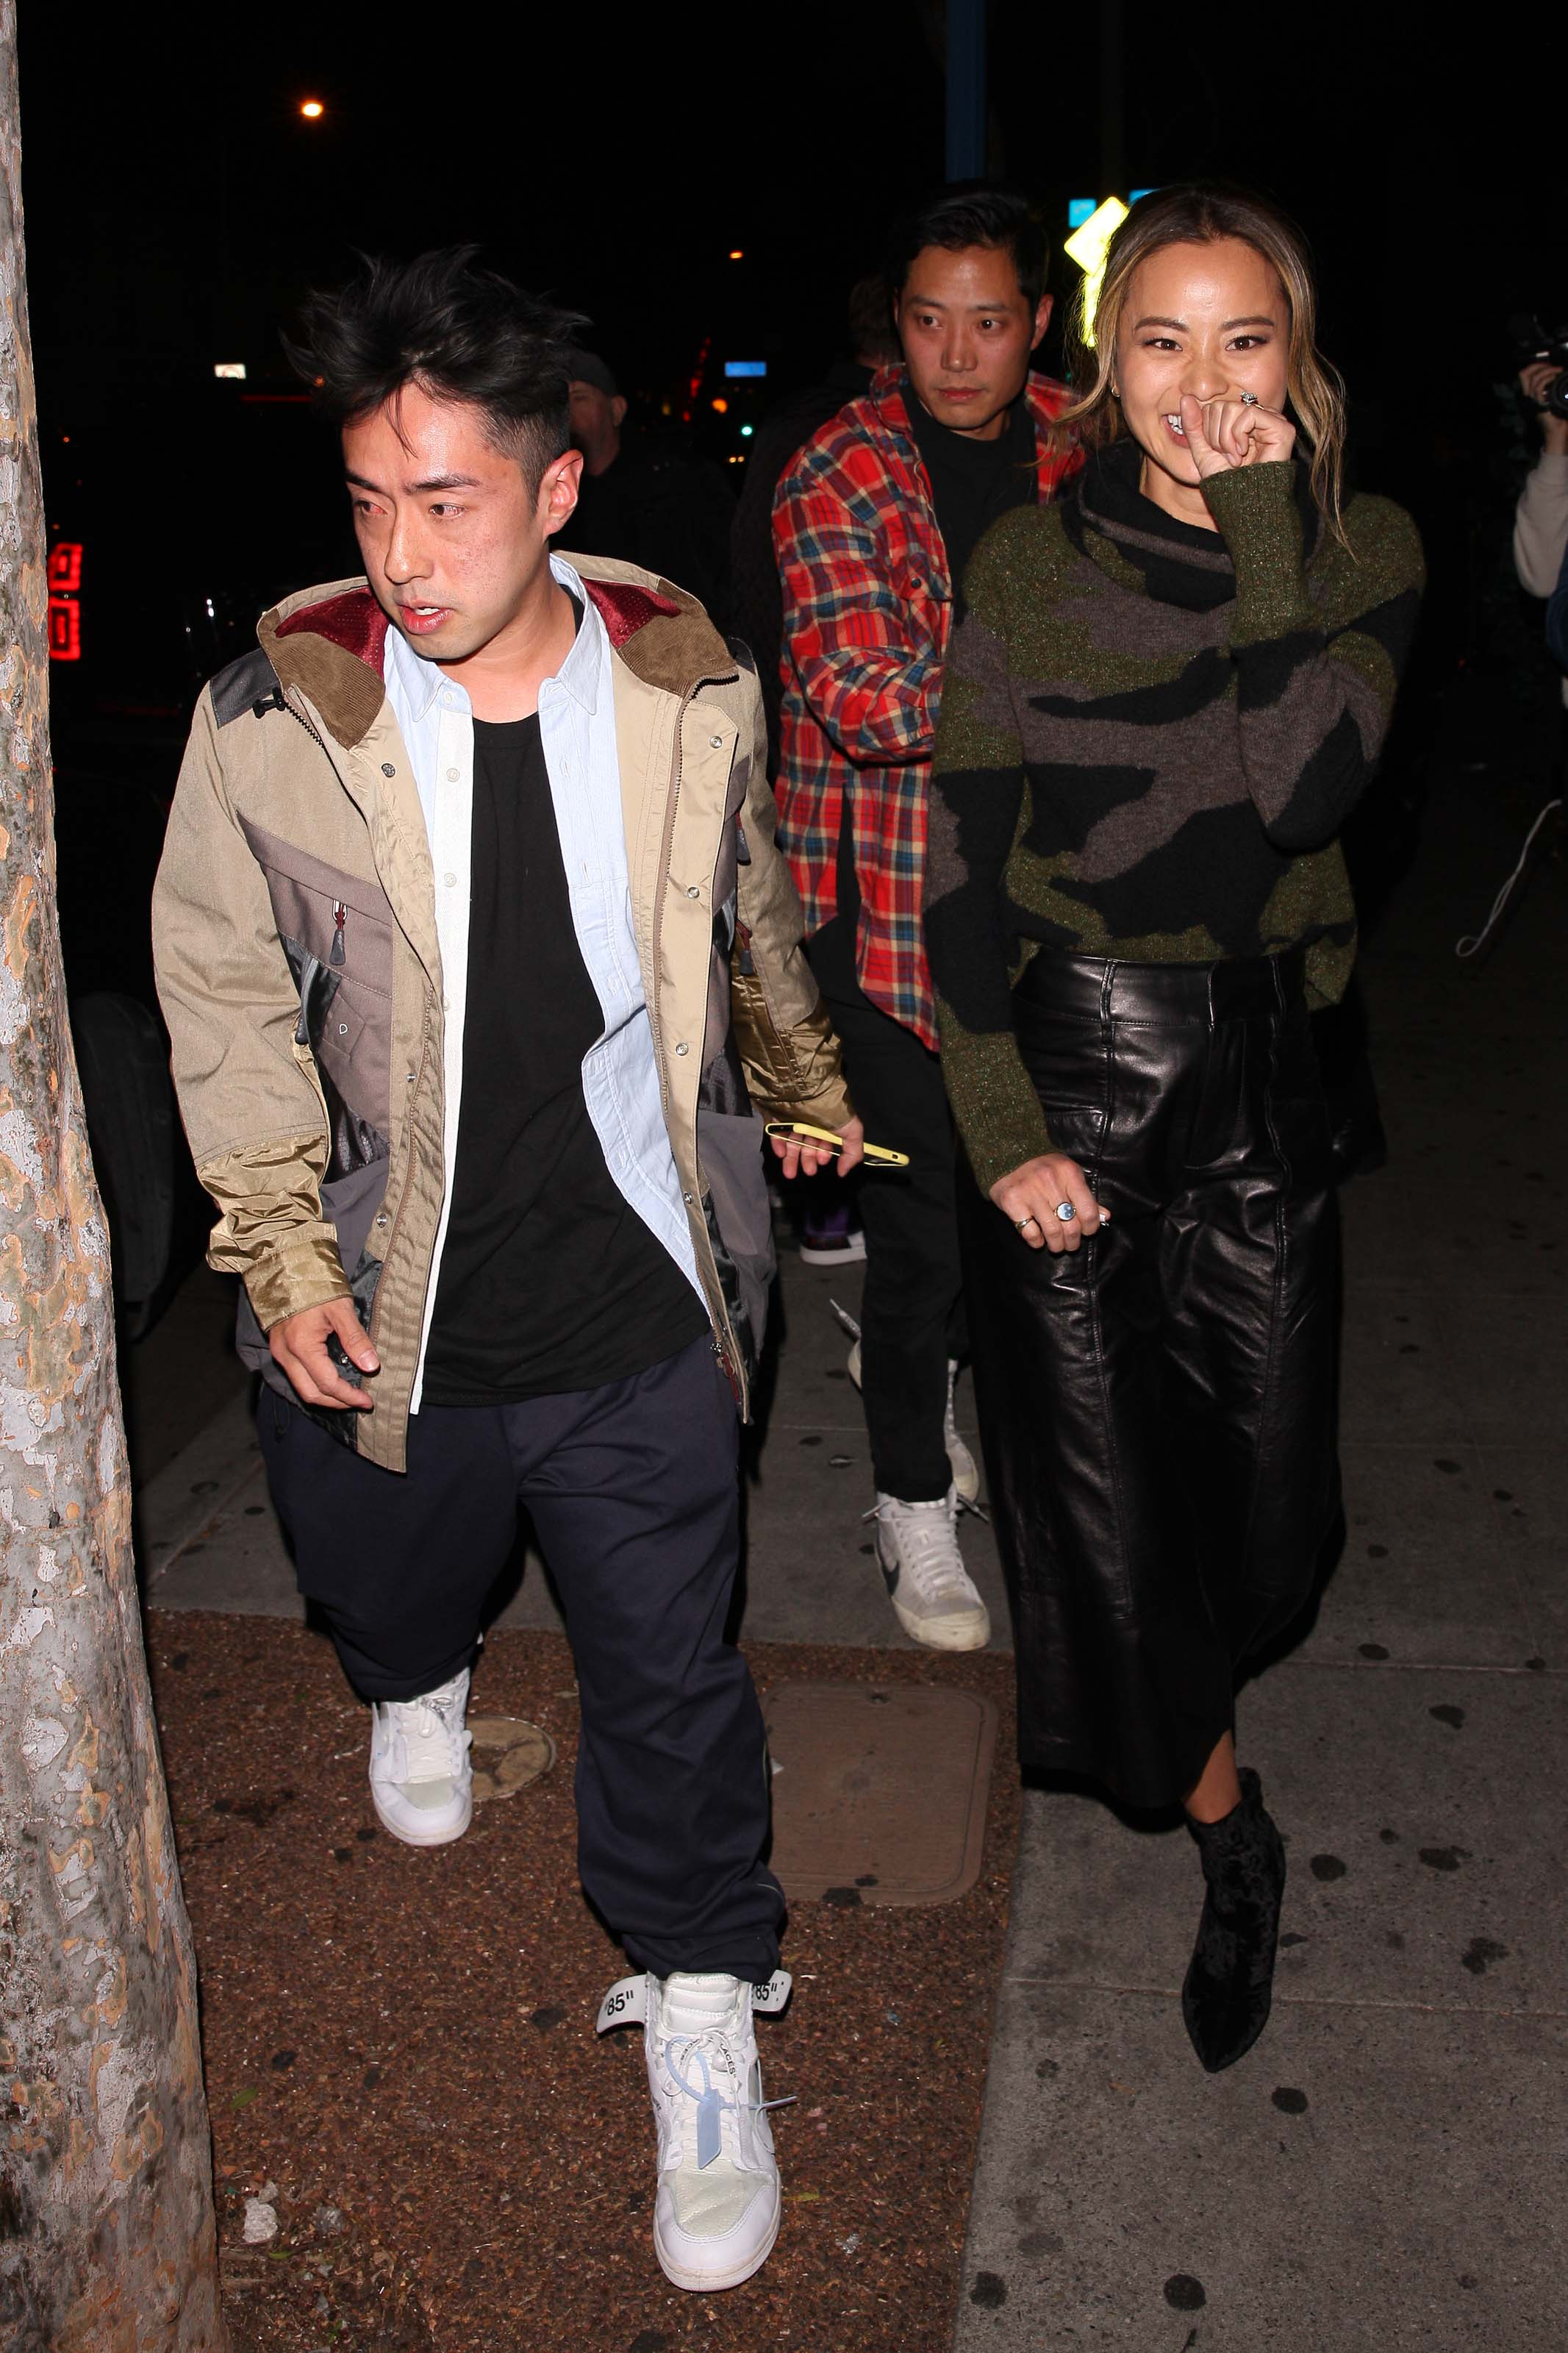 Jamie Chung leaves the Delilah club with a male friend